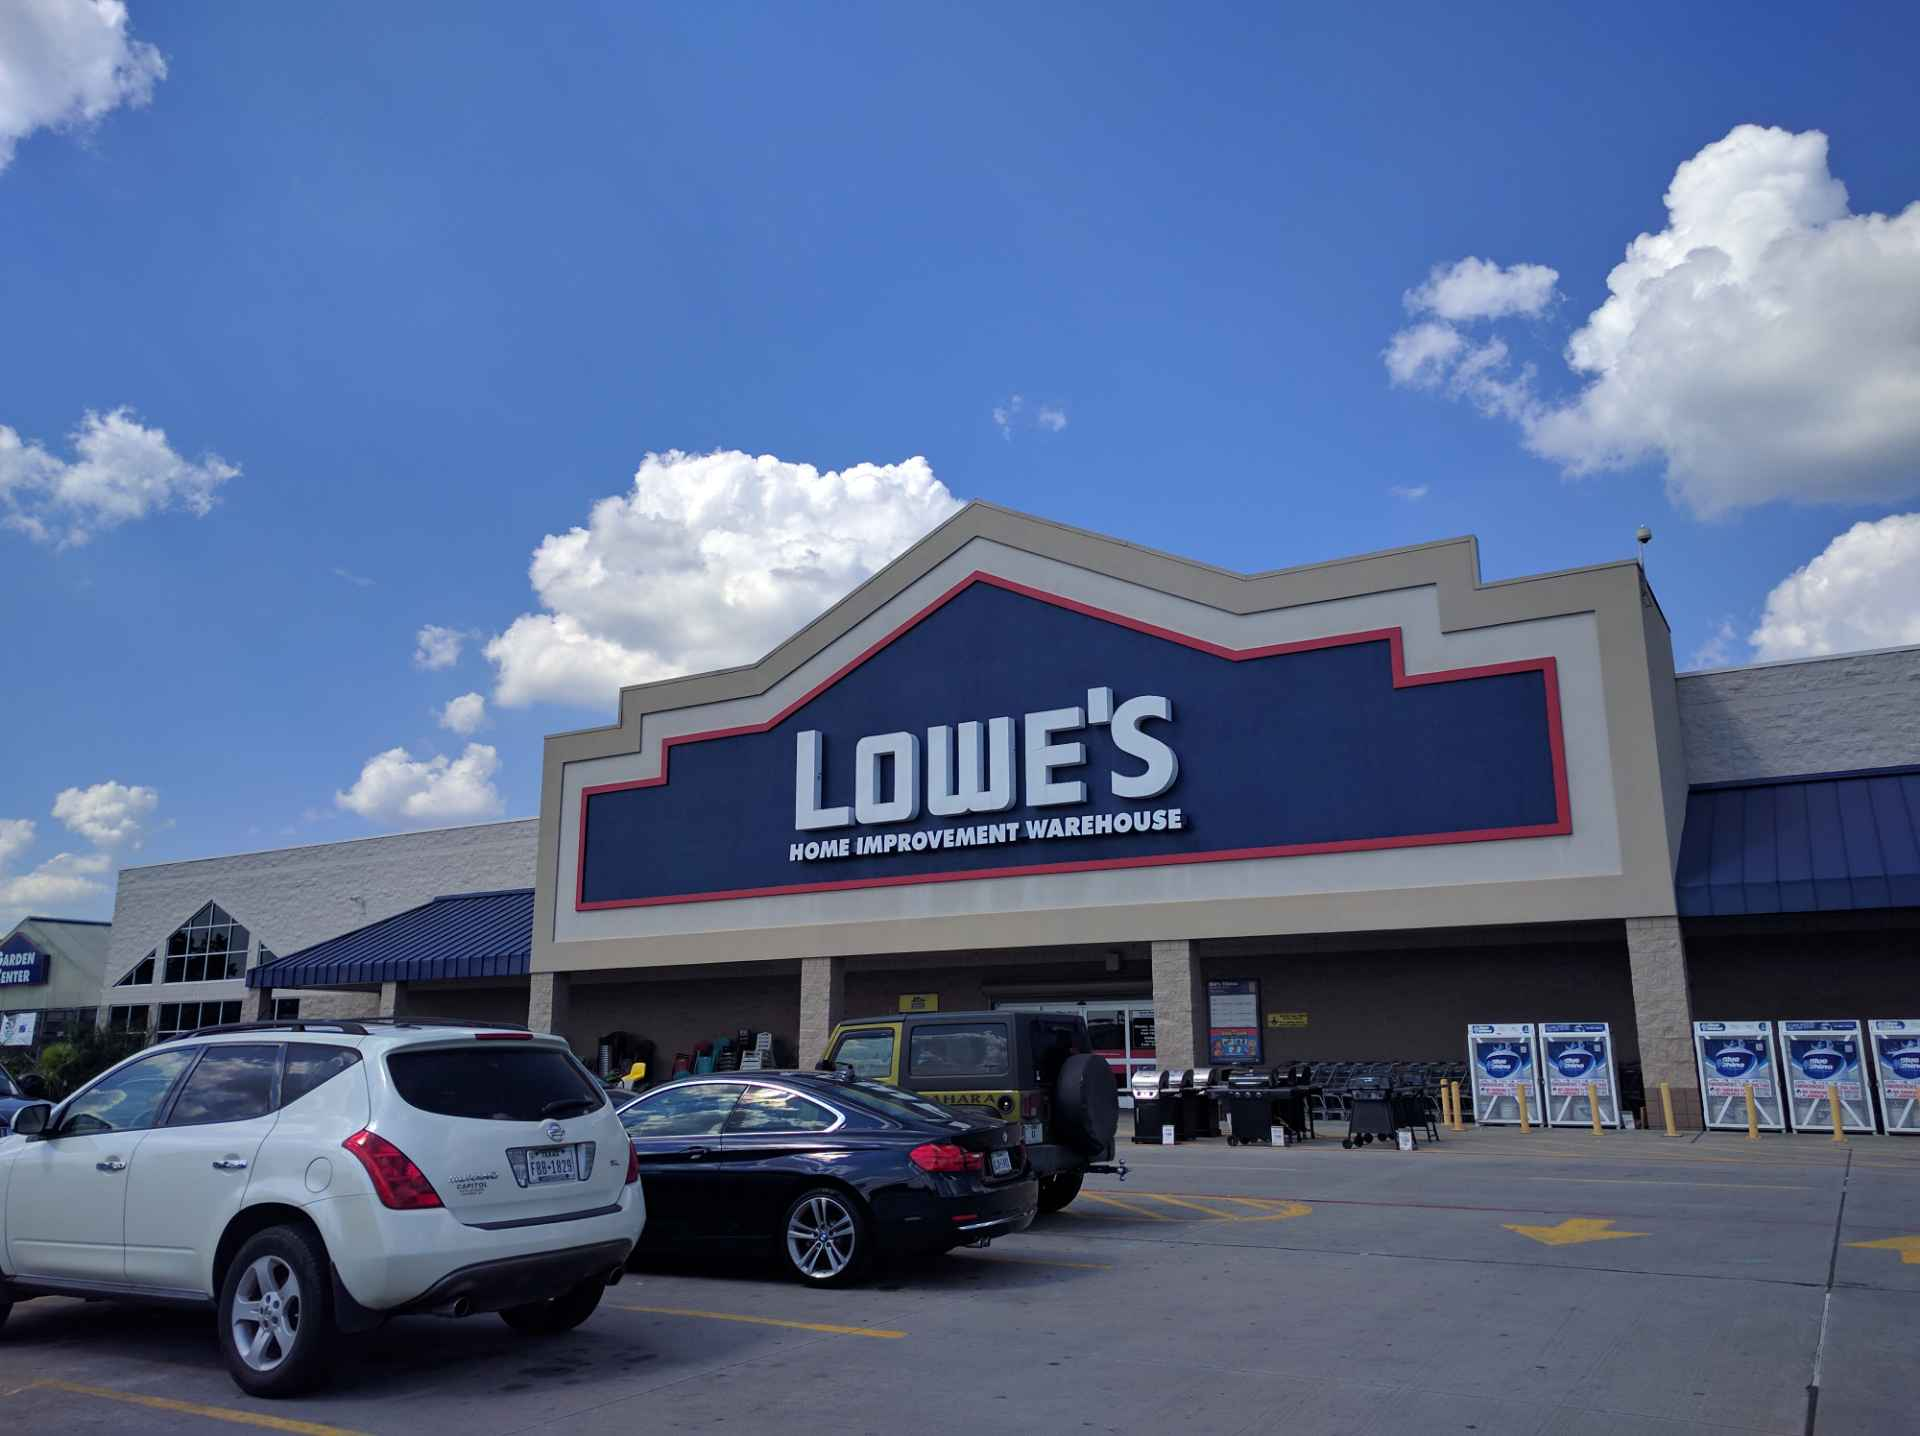 Lowe's storefront in Kingwood, Texas.